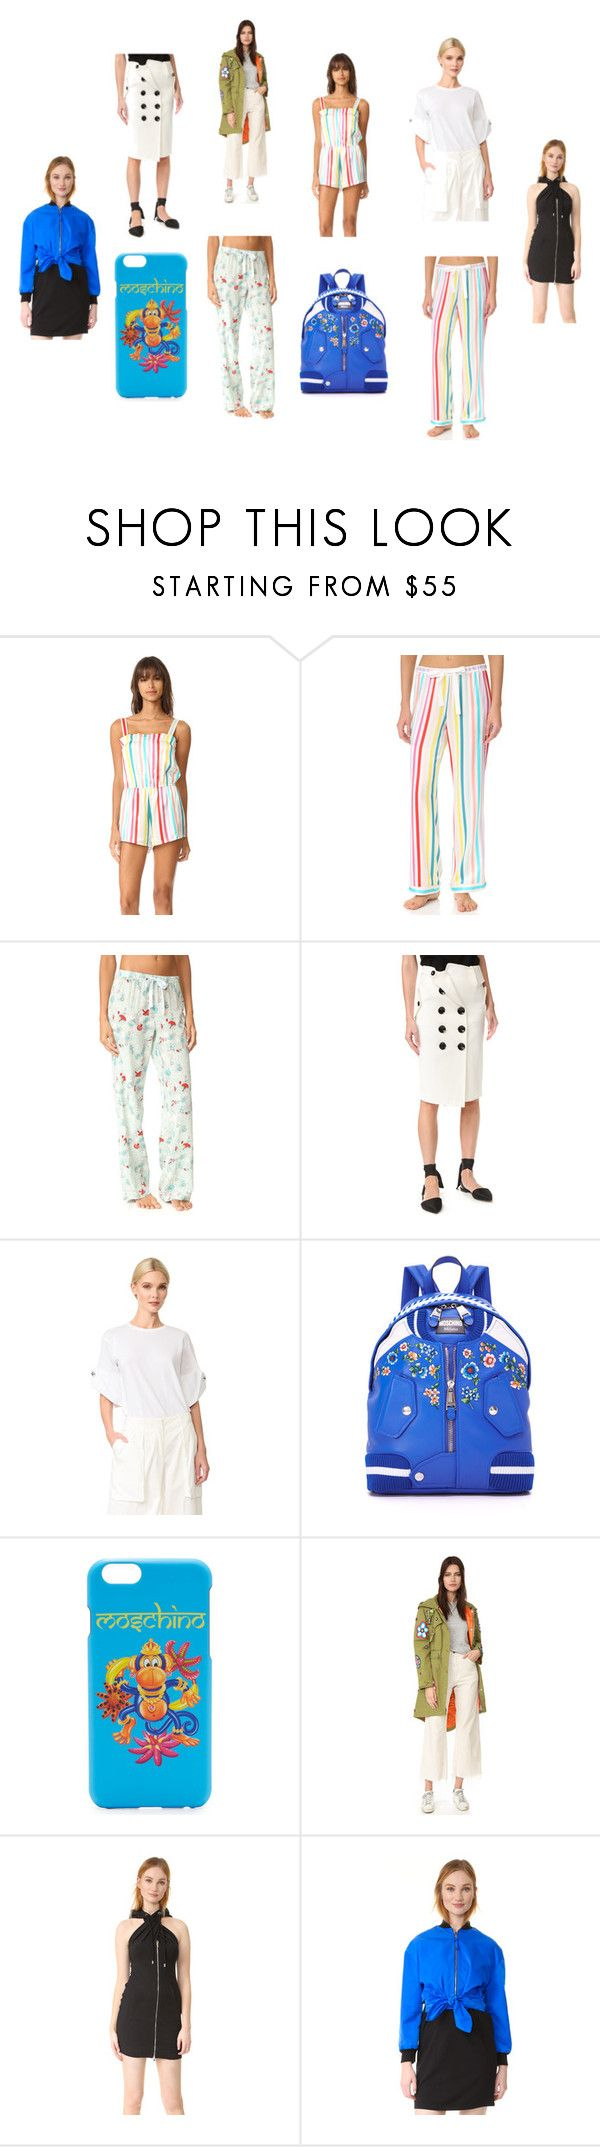 """""""printed fashion"""" by kristen-stewart-2989 ❤ liked on Polyvore featuring Morgan Lane, Monse, Moschino and vintage"""